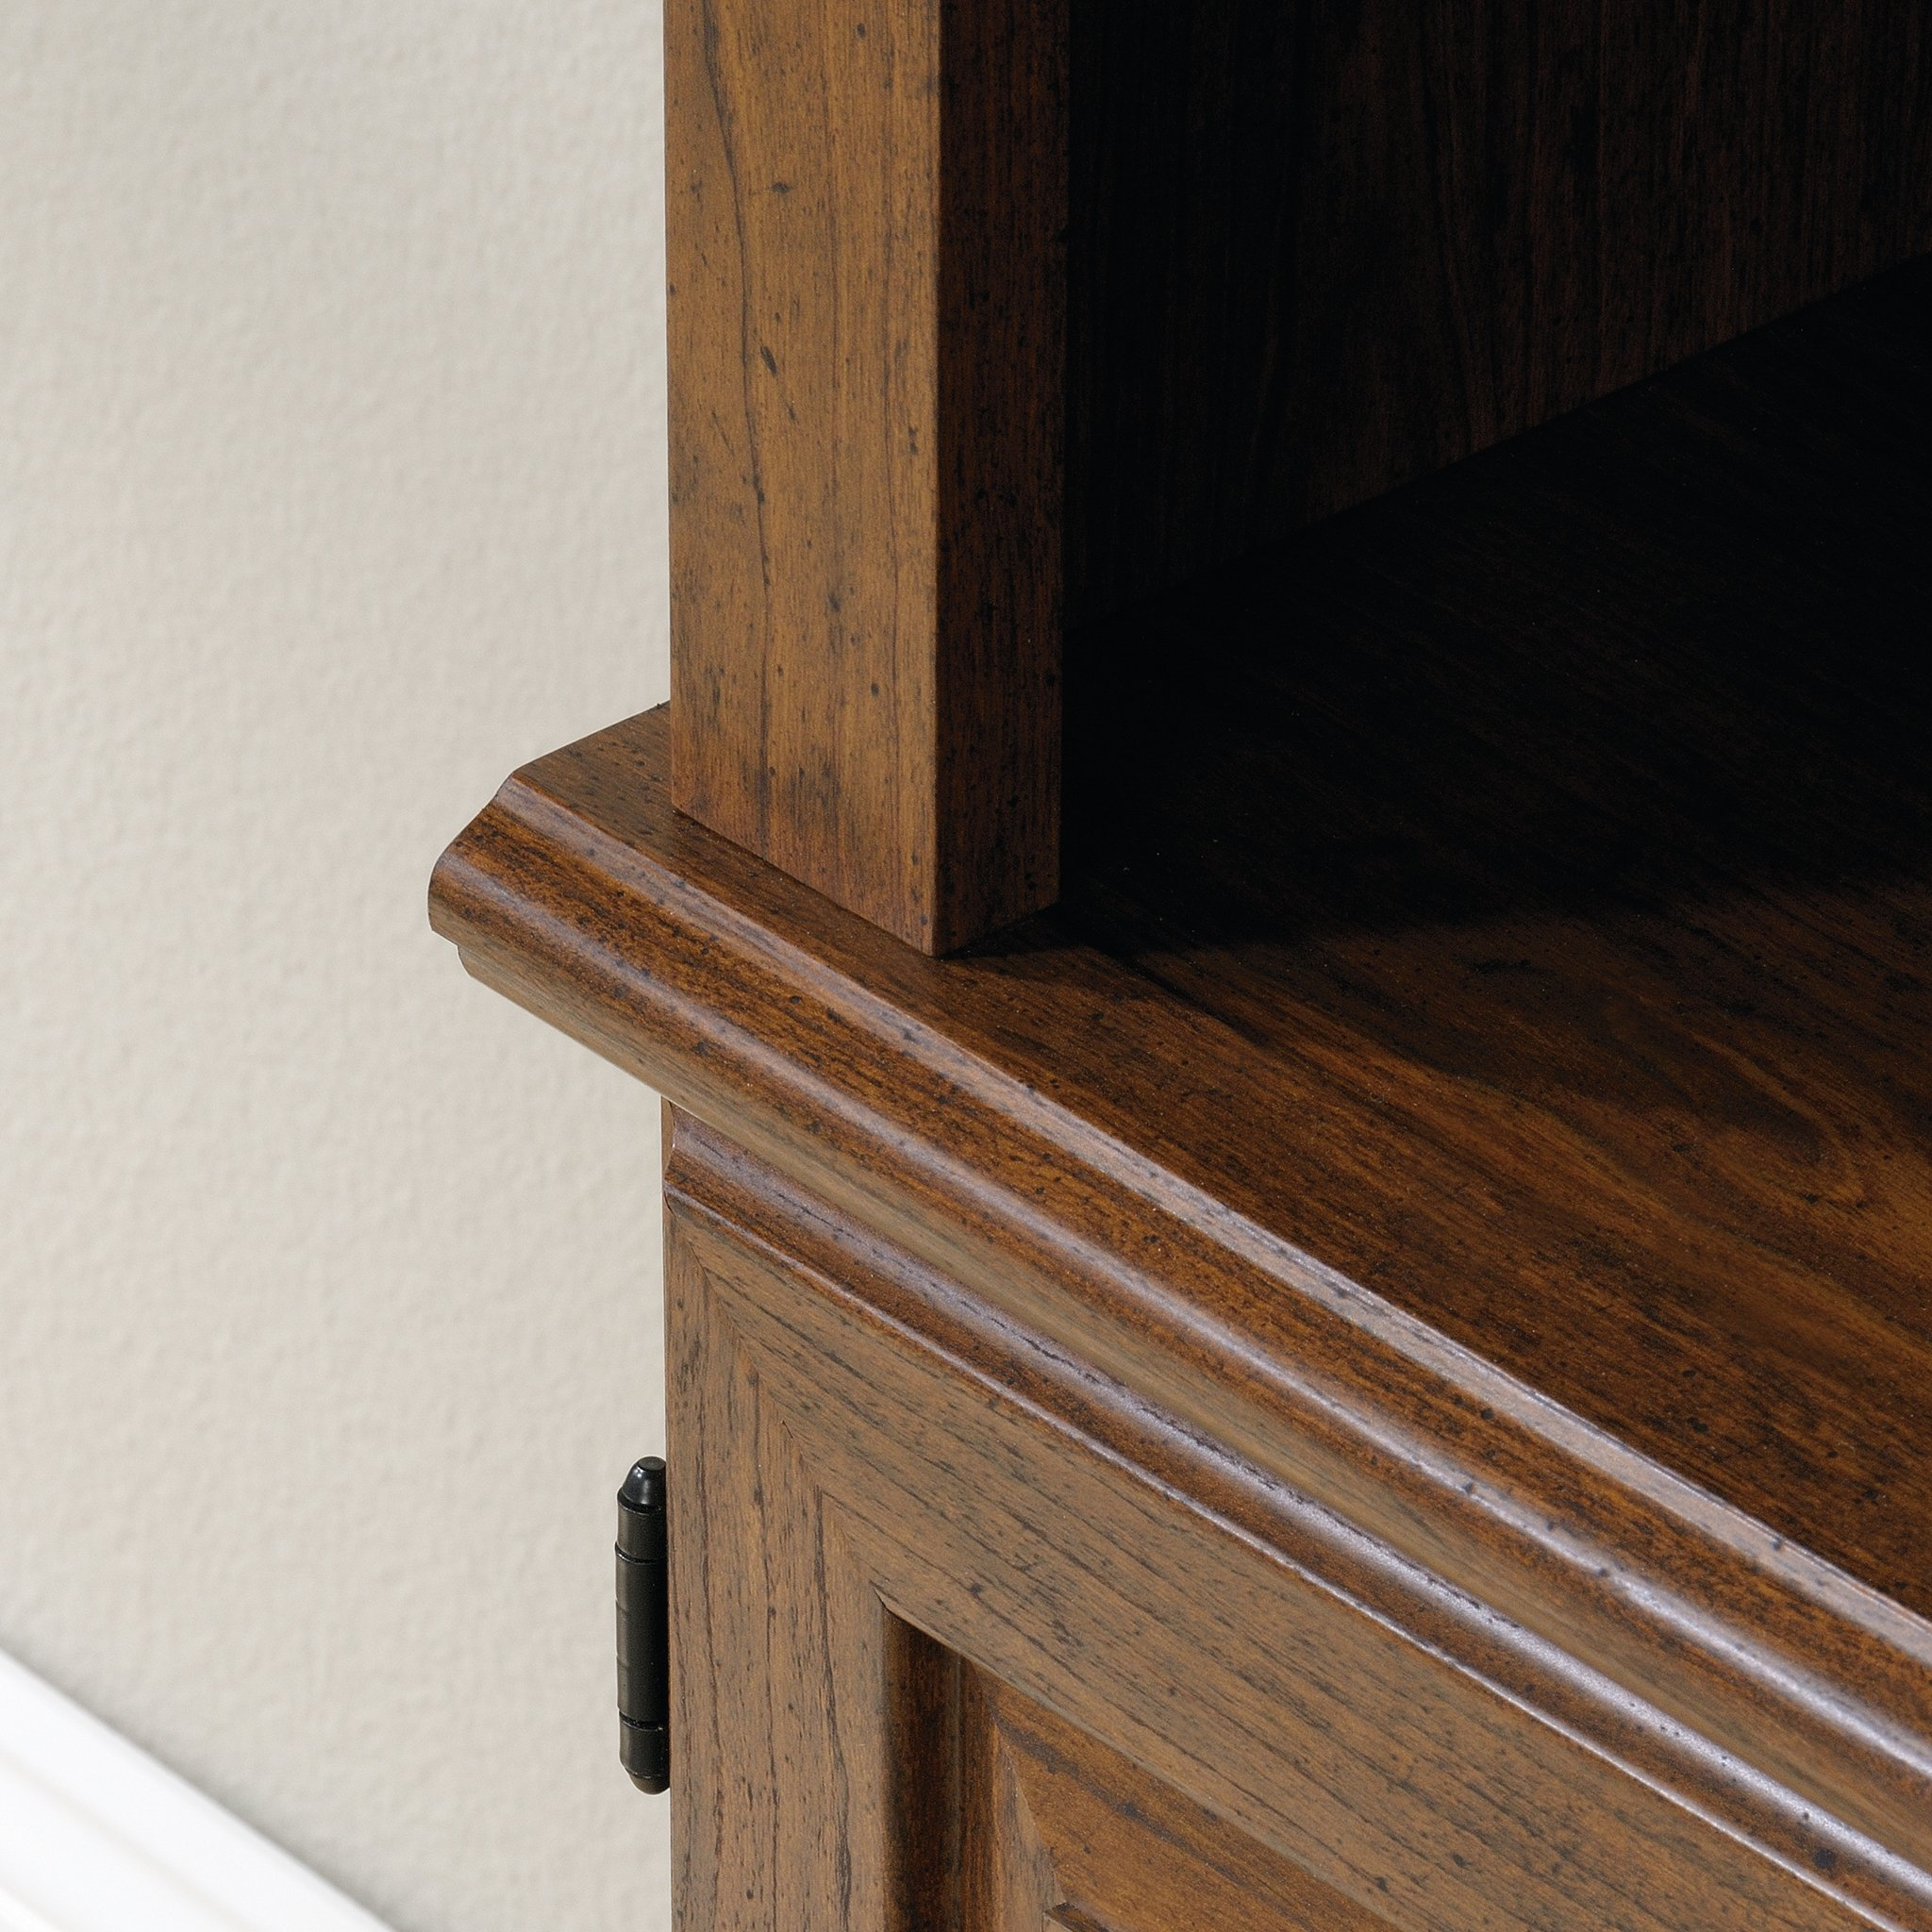 Sauder 418734 Orchard Hills Library with Doors, L: 29.45'' x W: 13.47'' x H: 71.50'', Milled Cherry finish by Sauder (Image #5)